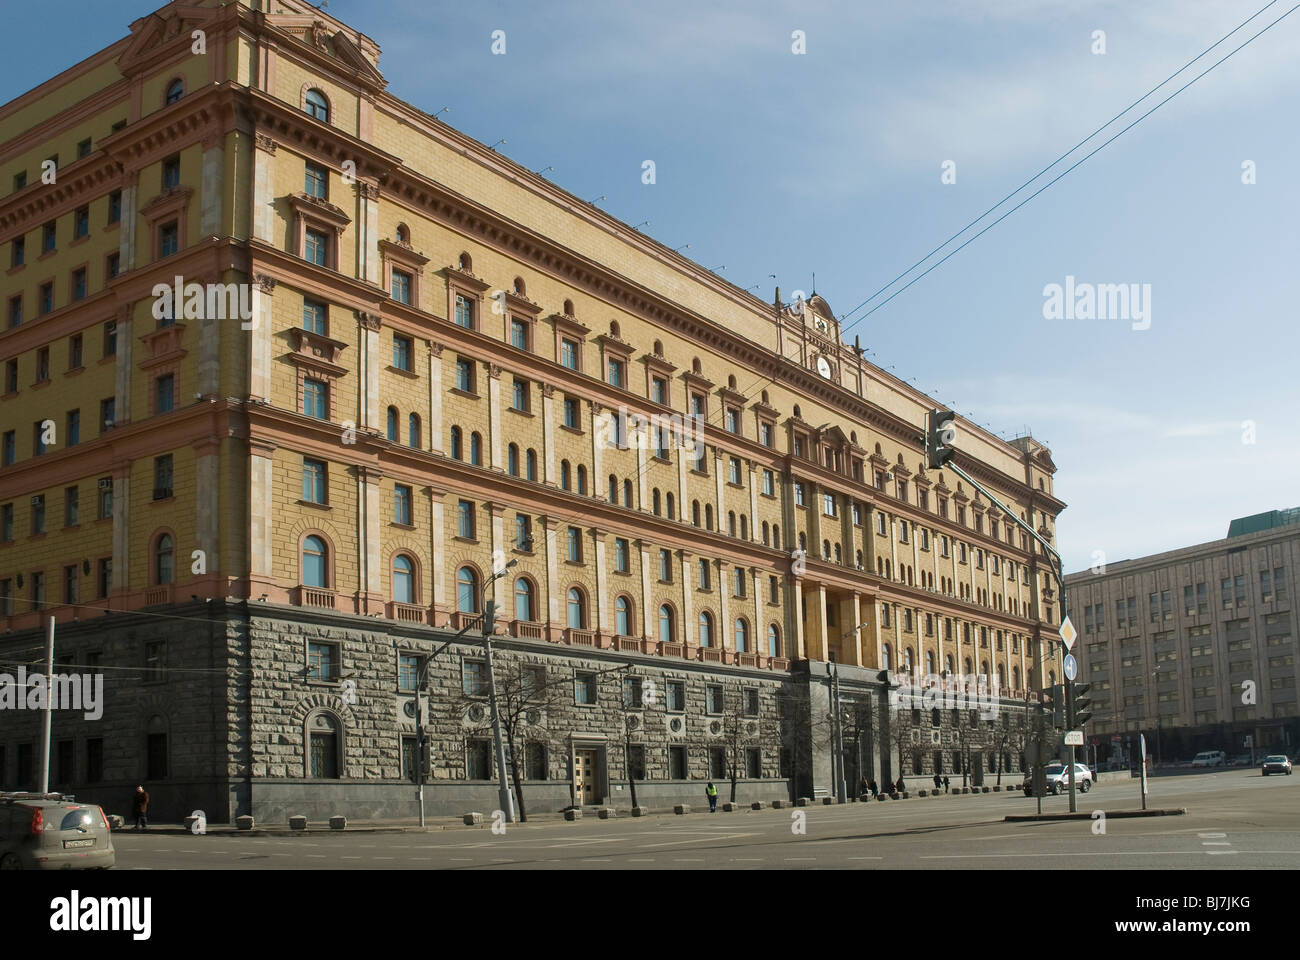 KGB building on Lubyanka square. Moscow, Russia - Stock Image